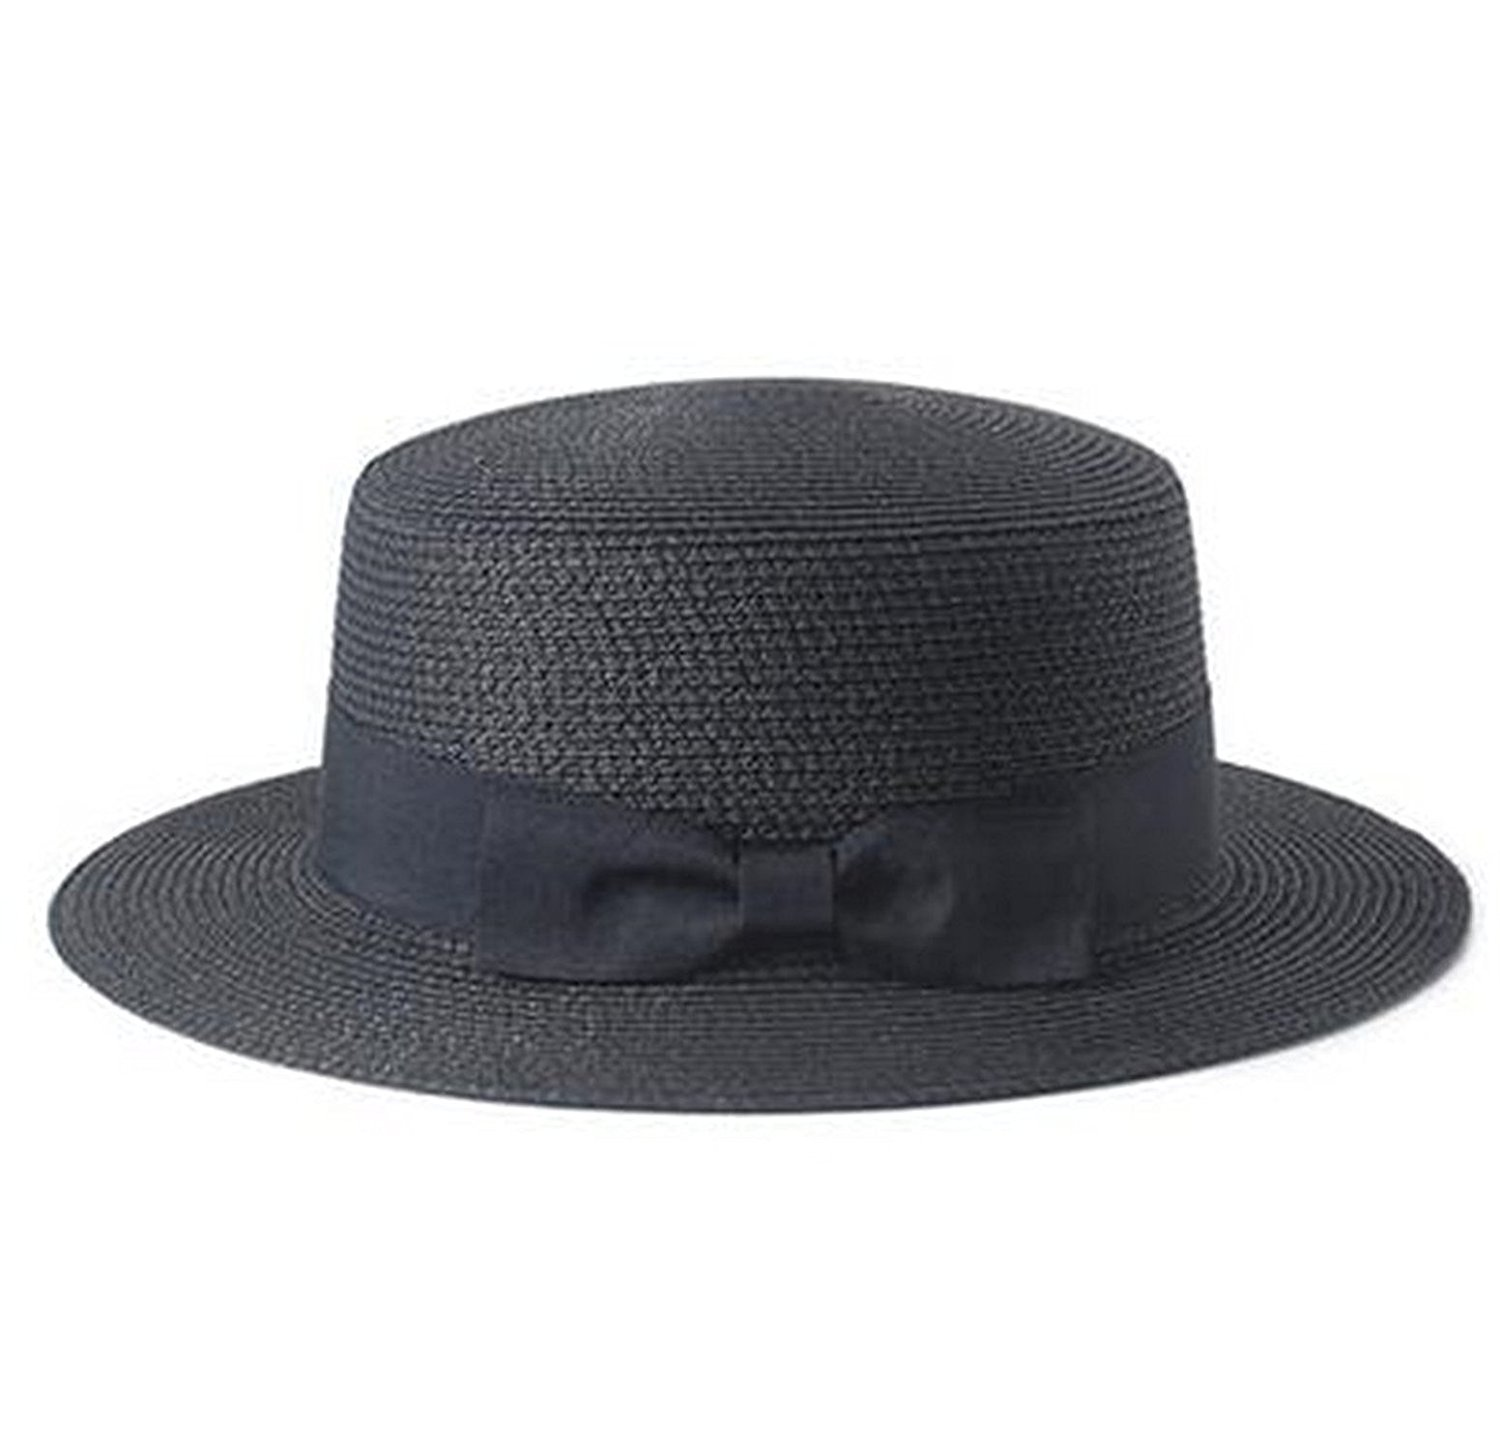 011afc7eeac Get Quotations · Mainstream Sun Straw Hat boater hat Women s bow summer Hats  For Women Beach flat straw hat